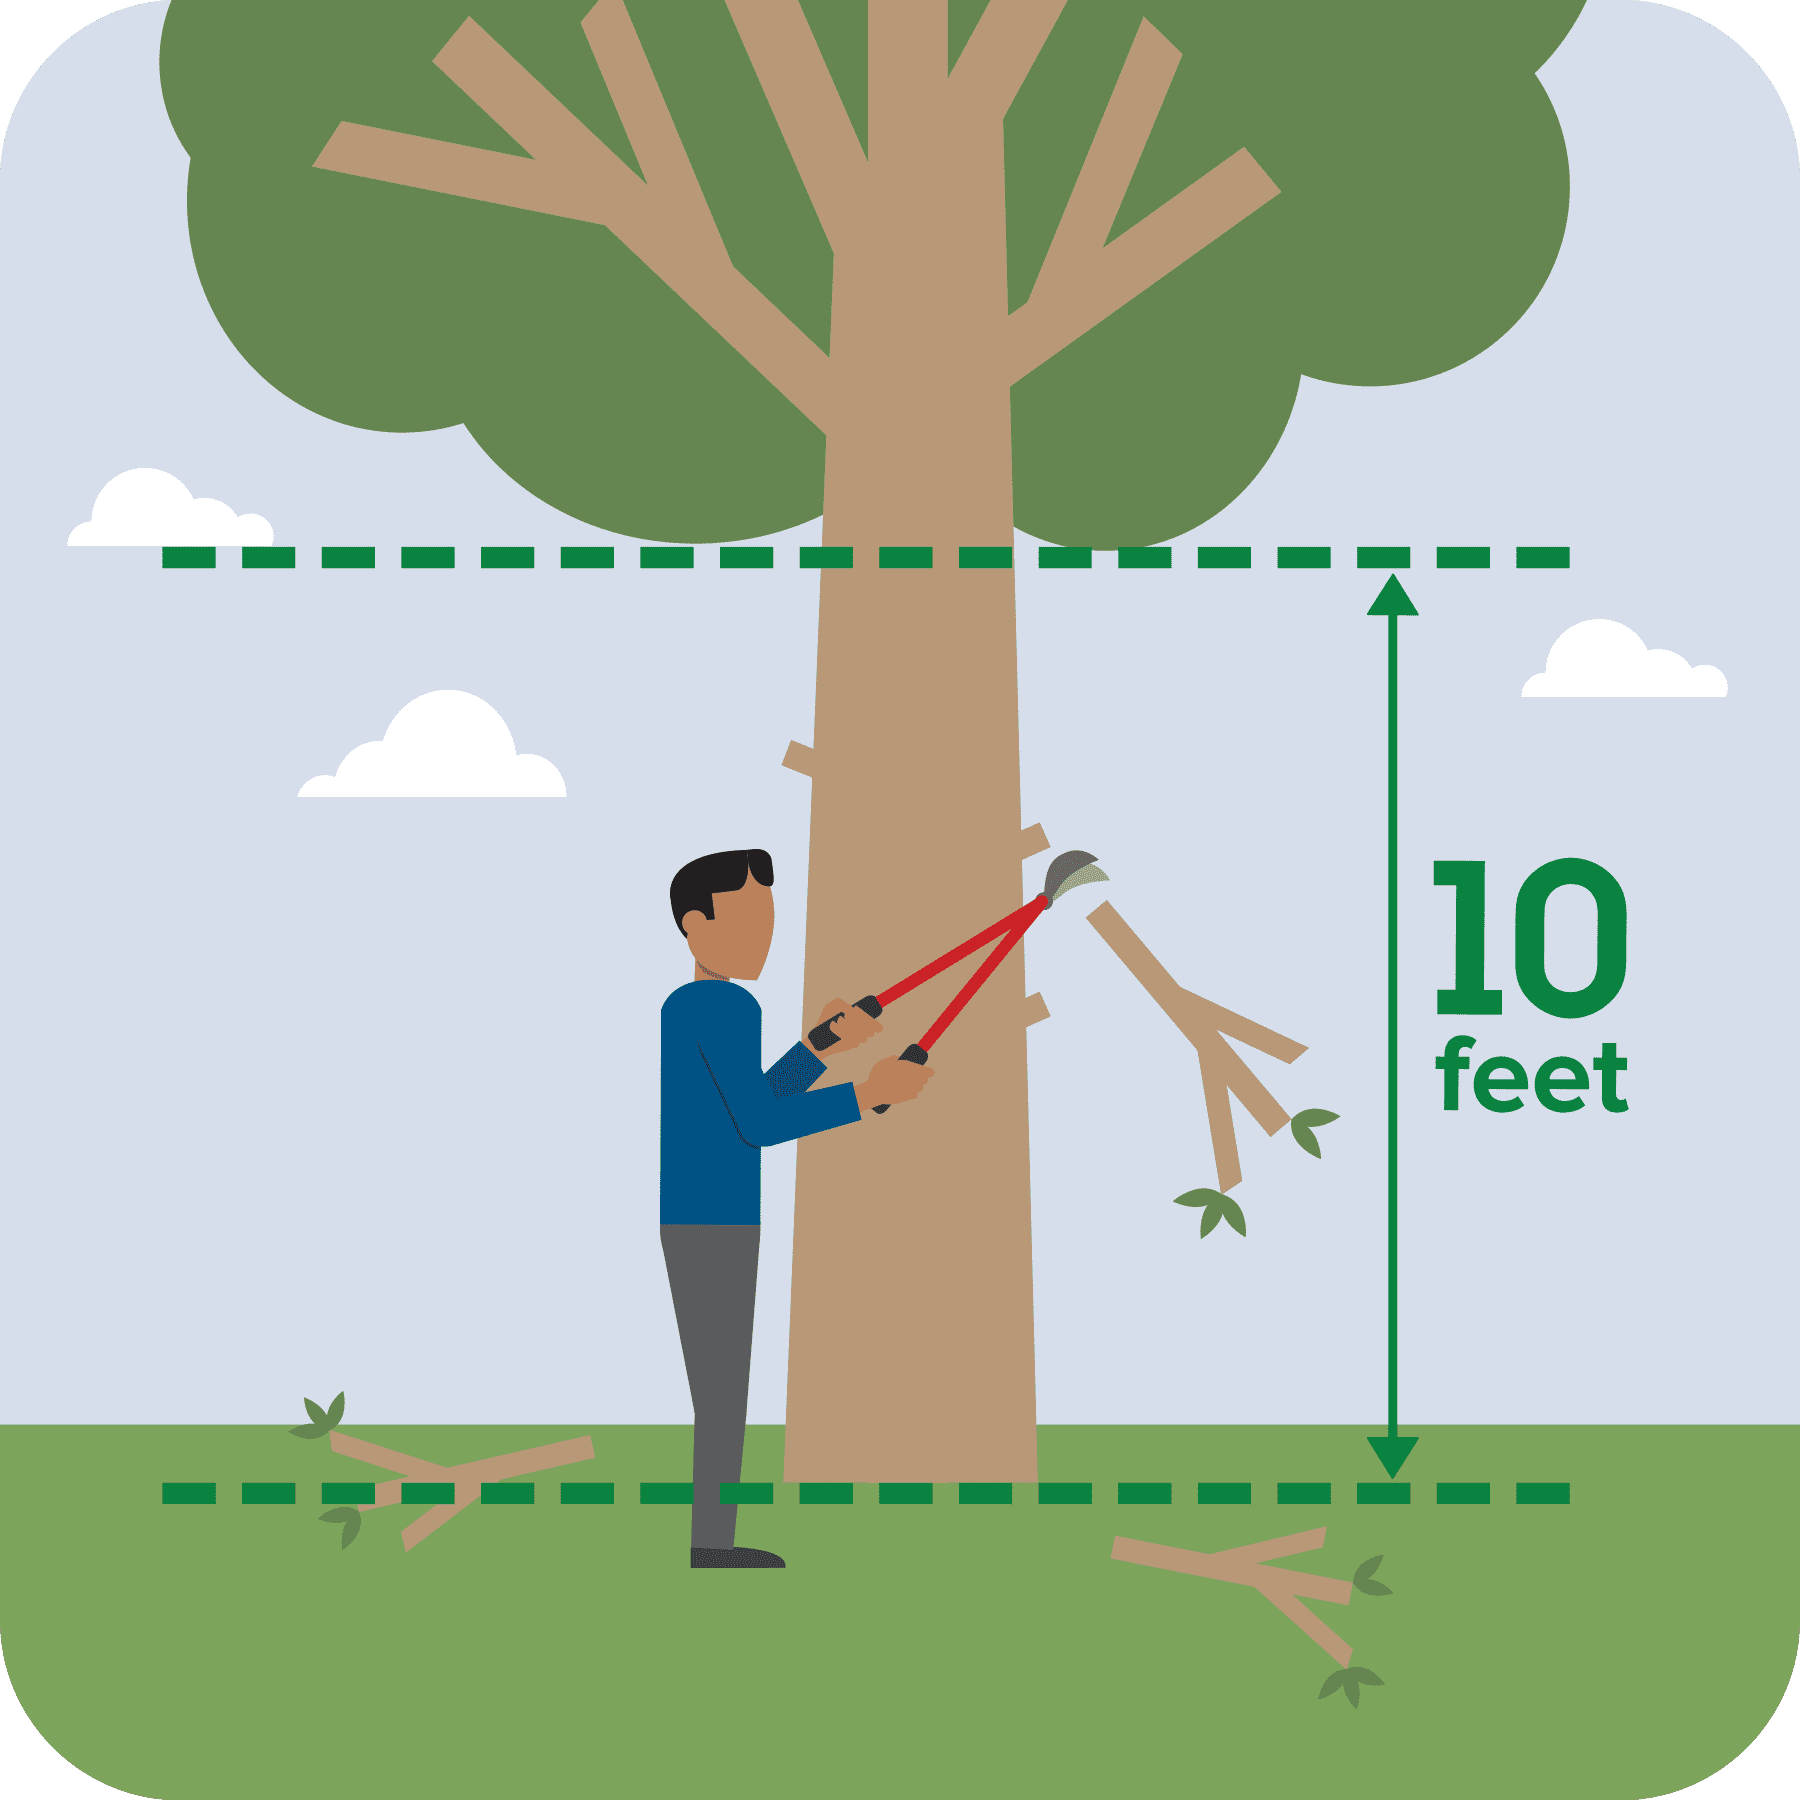 Man cutting tree limbs so that they are 10 feet from the ground.